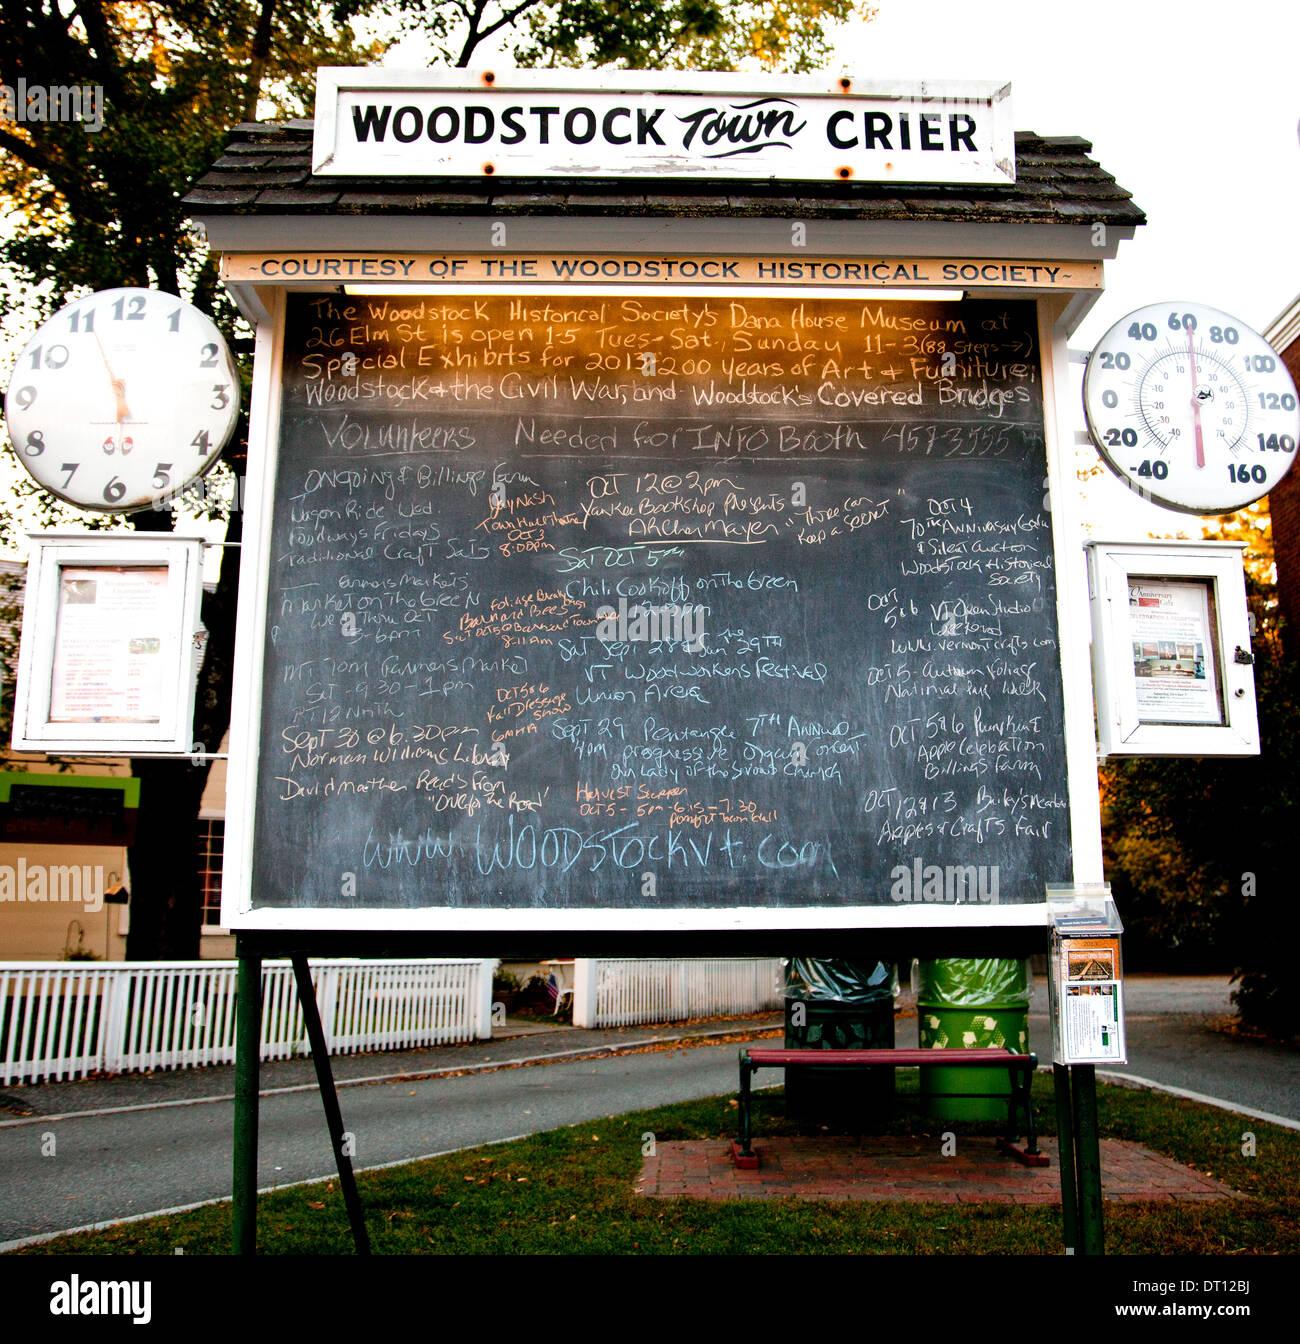 TheTown Crier is a community bulletin board in the heart of town that lists nearly everything going on in Woodstock, Vermont.. - Stock Image